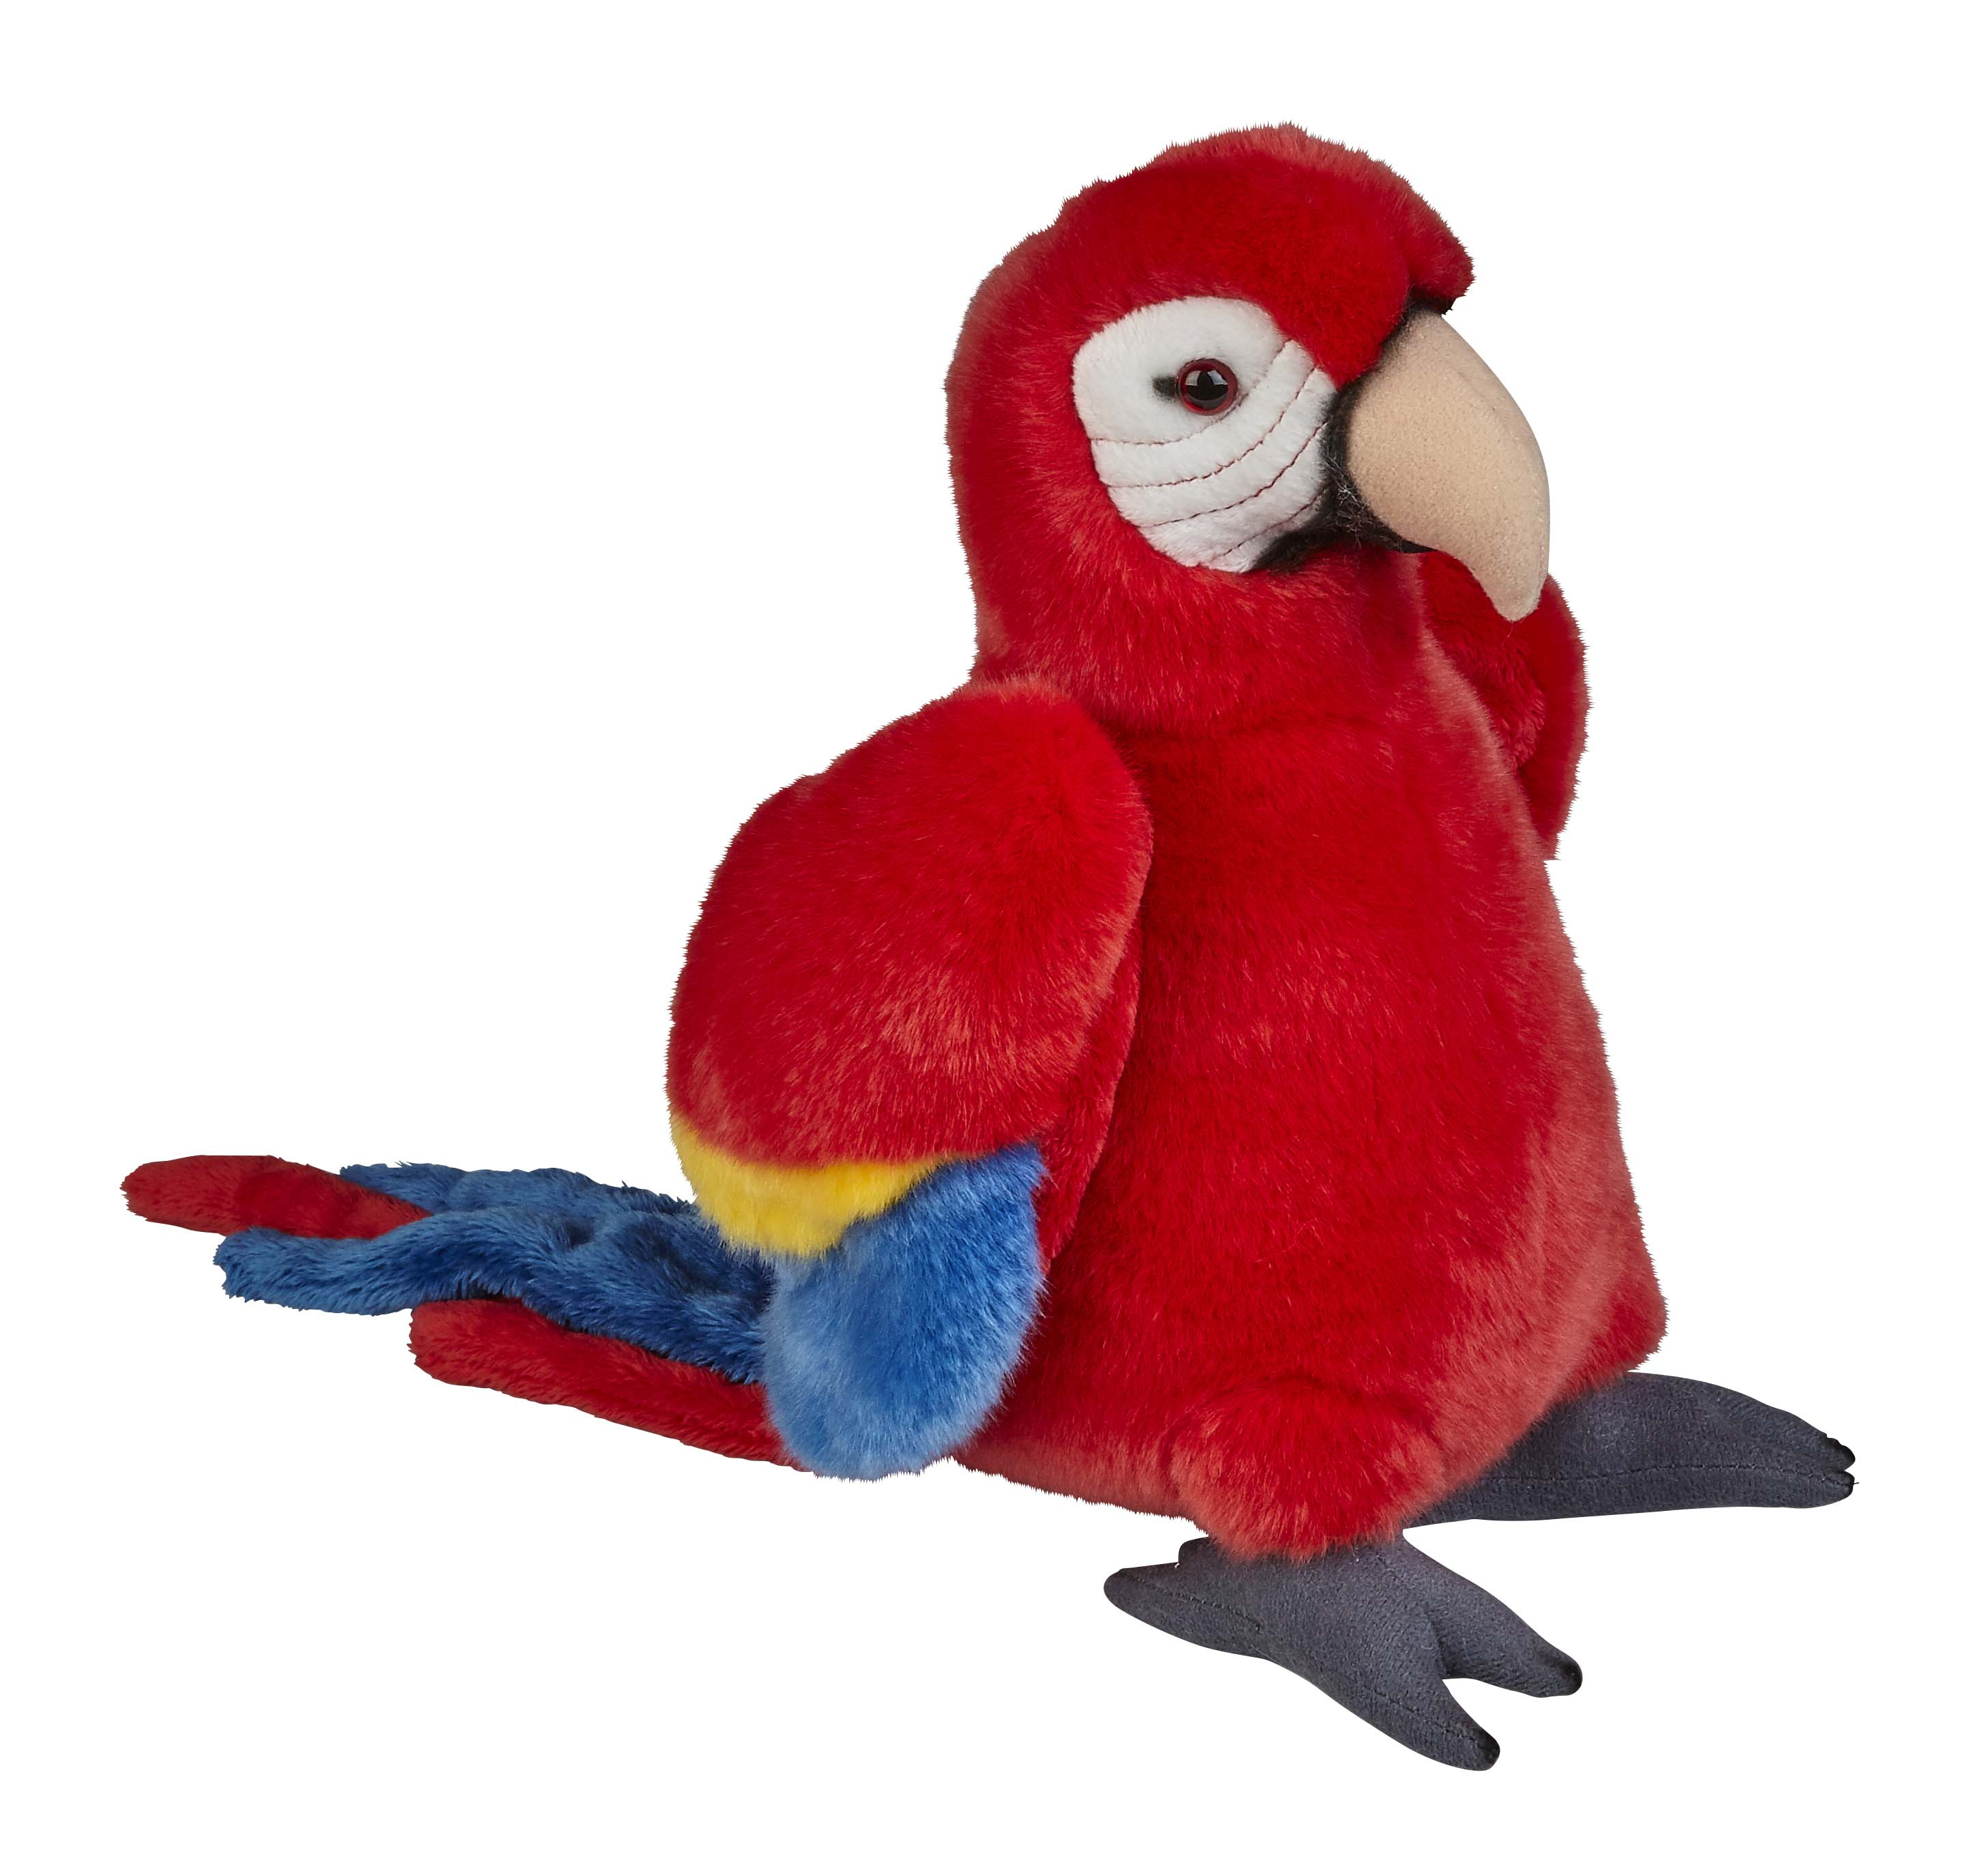 Red macaw soft toy